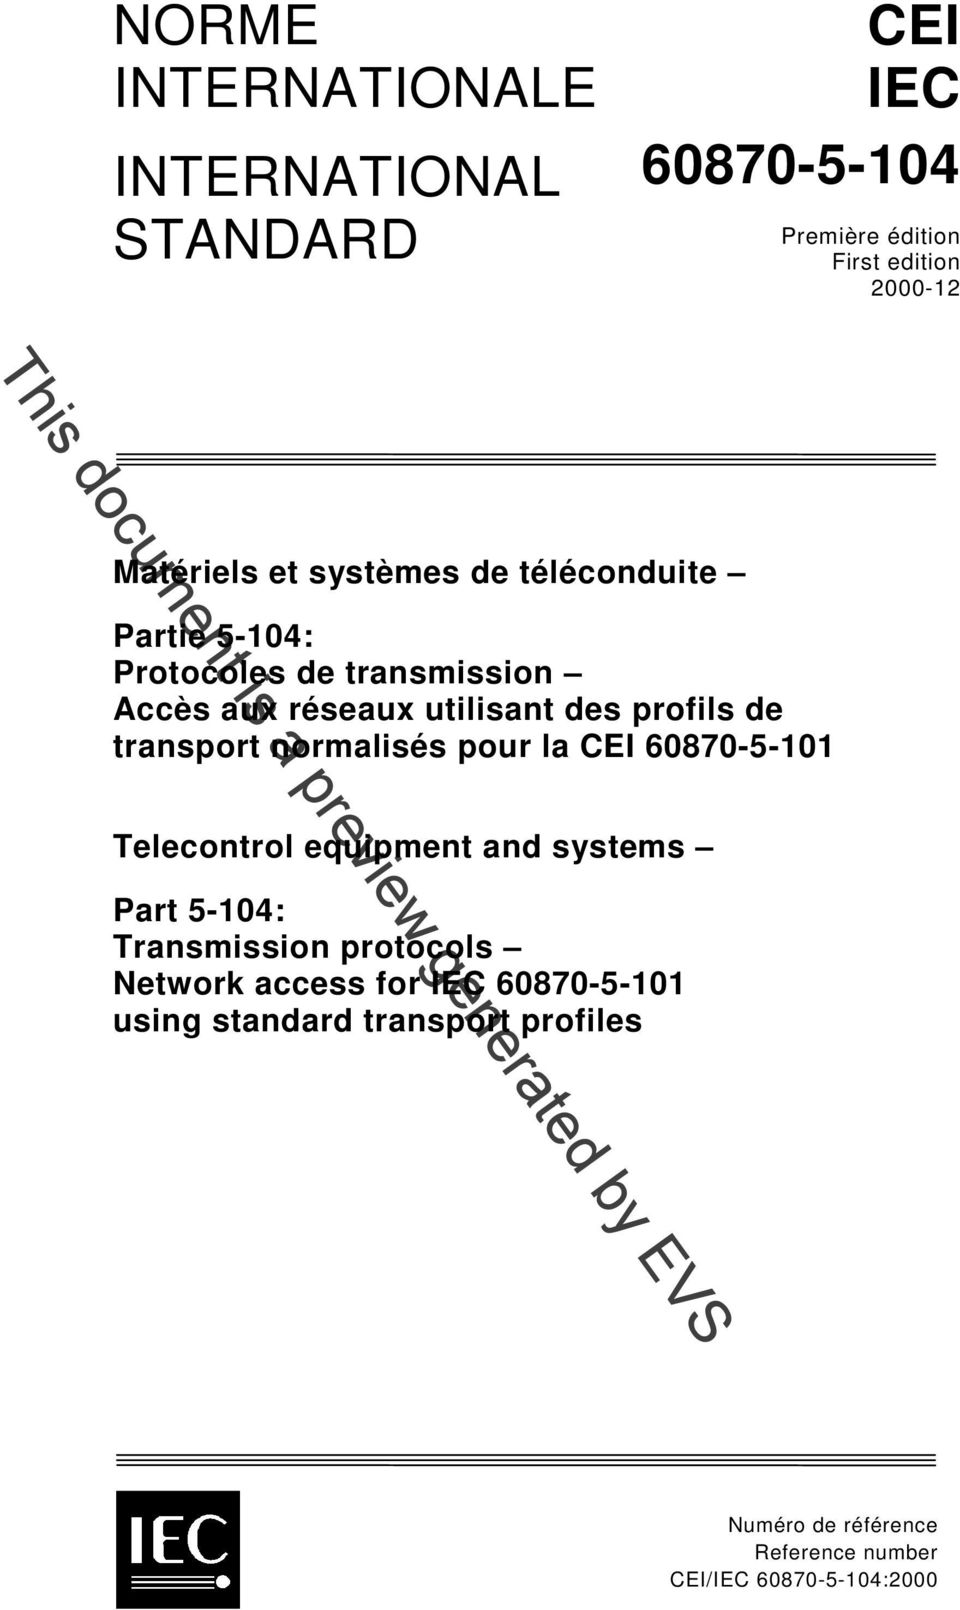 transport normalisés pour la CEI 60870-5-101 Telecontrol equipment and systems Part 5-104: Transmission protocols